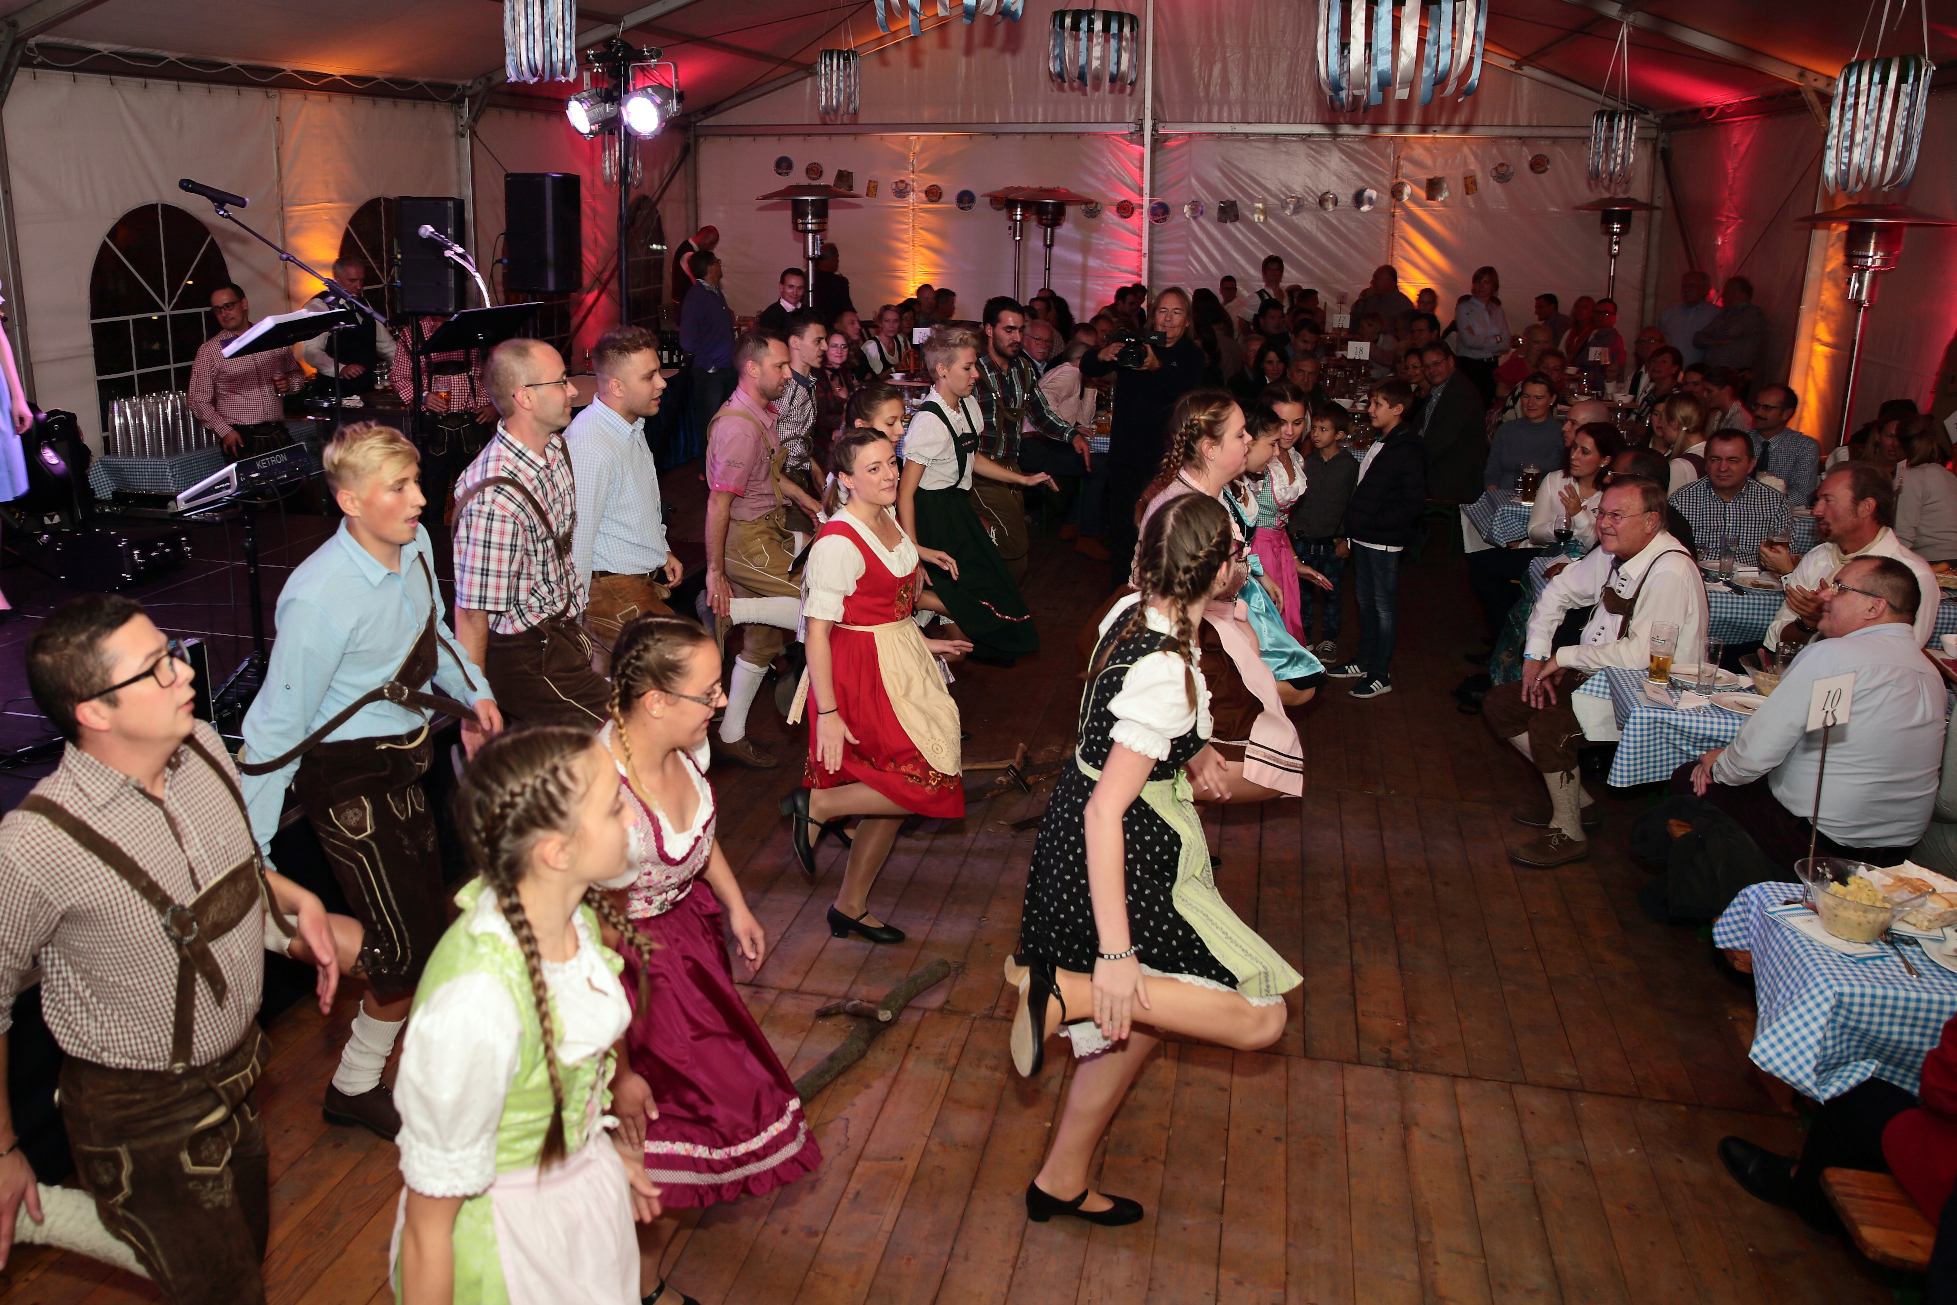 German Business Club Hungary's Oktoberfest On 12 October